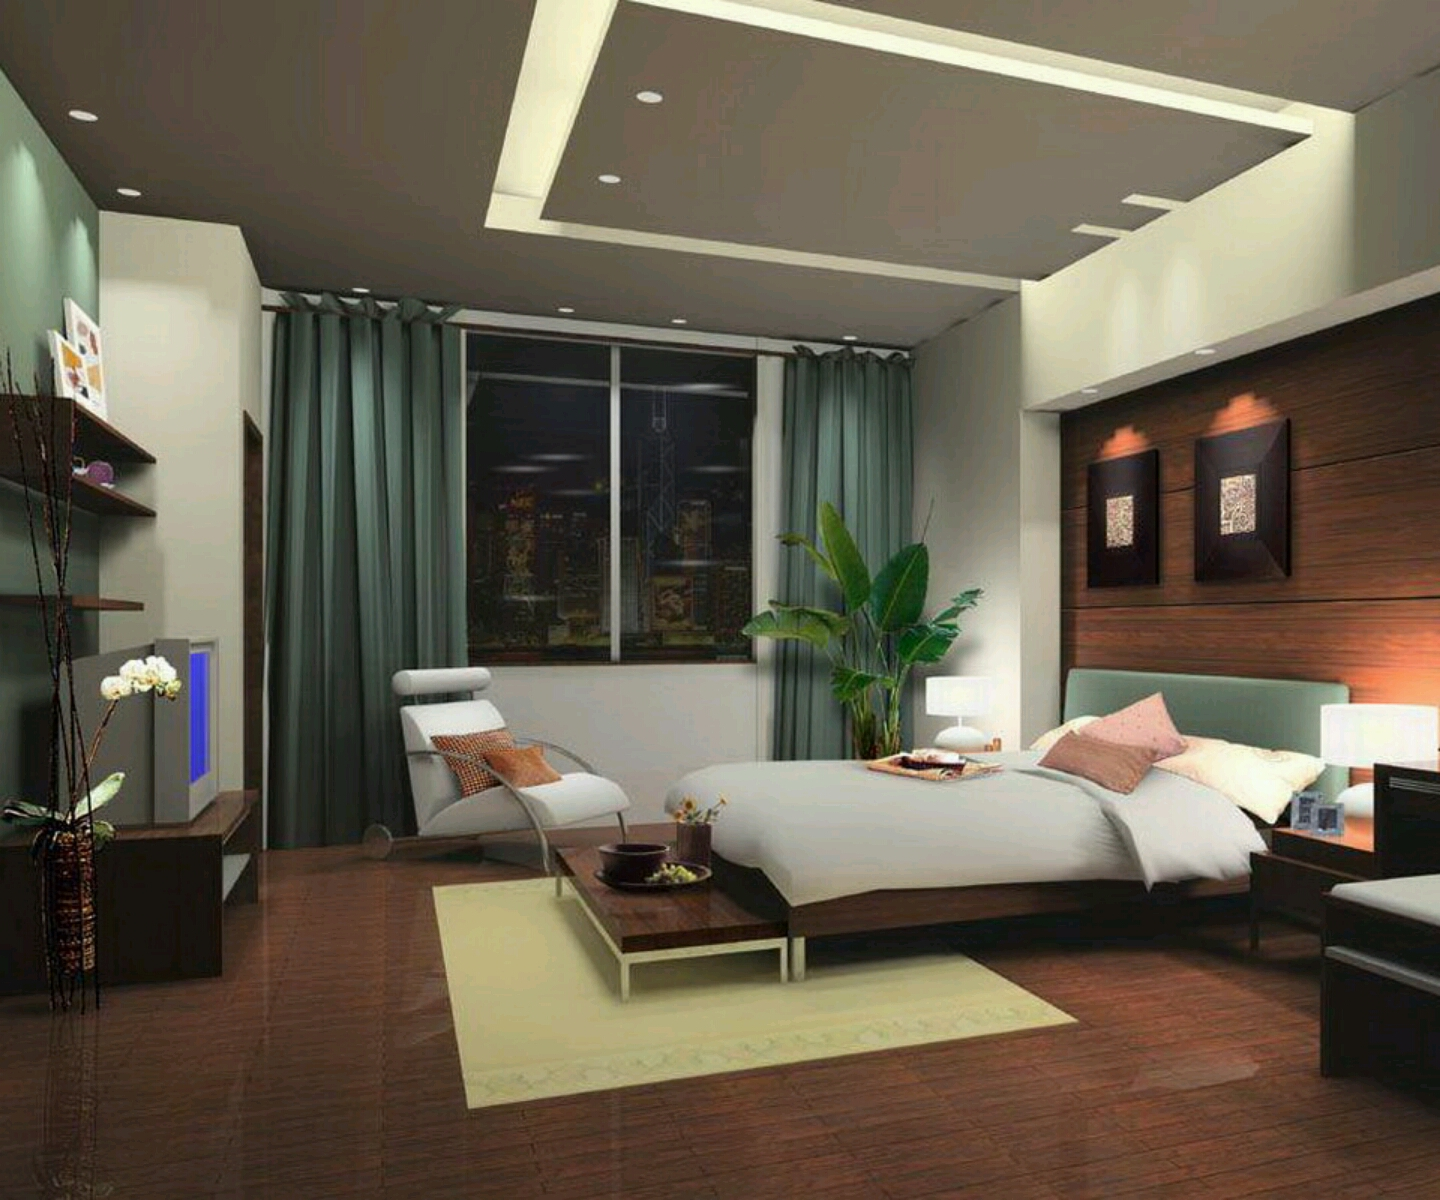 New home designs latest modern bedrooms designs best ideas for House design ideas 2016